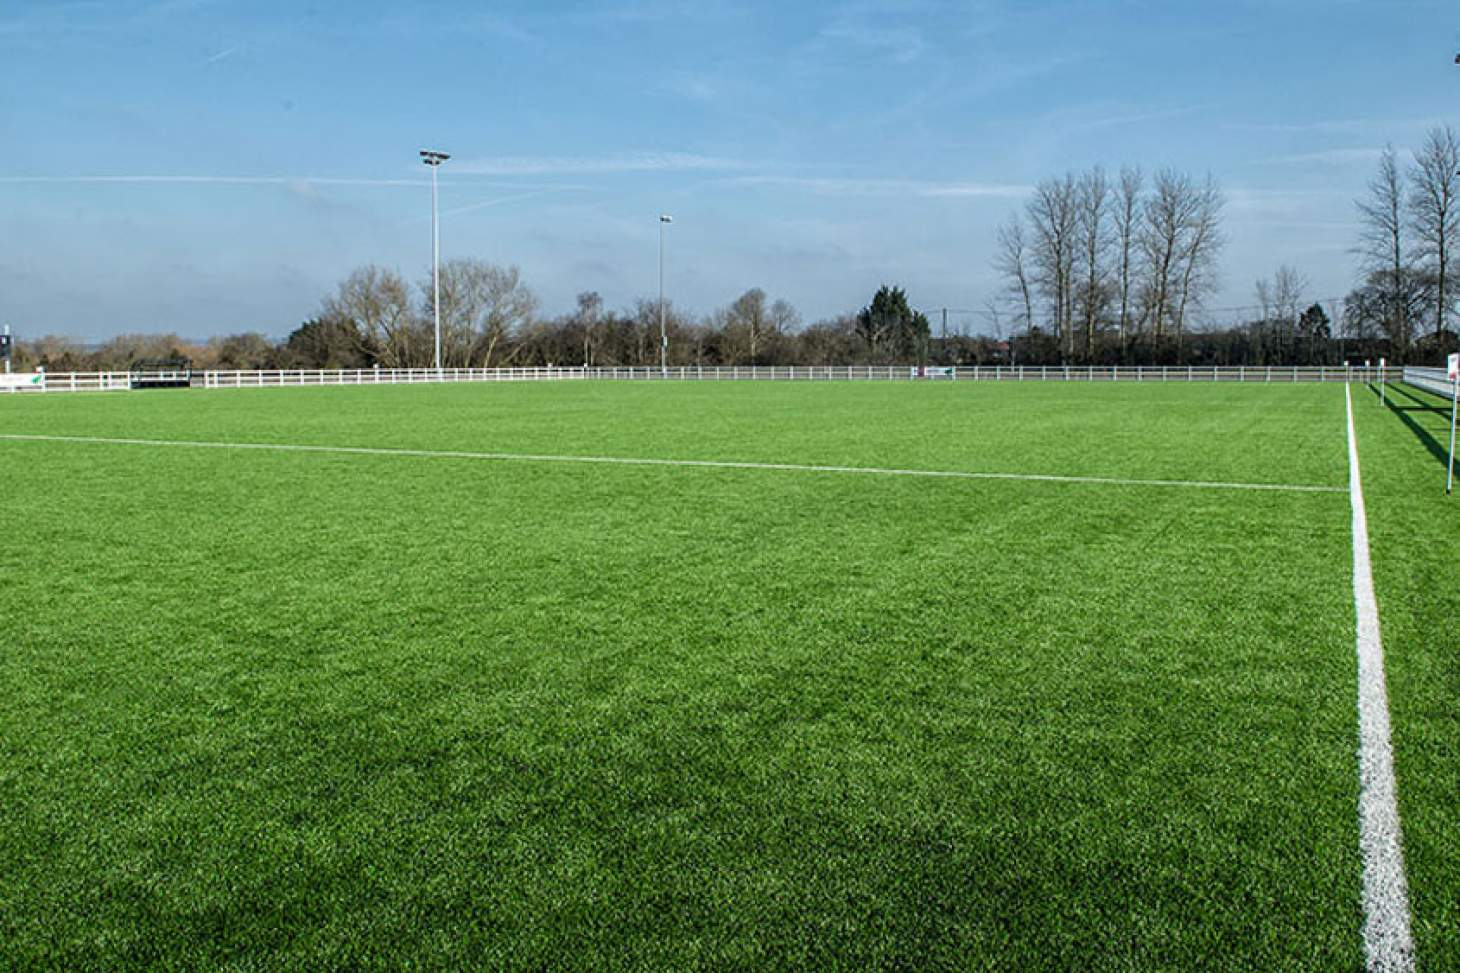 PlayFootball Blaydon 5 a side | 3G Astroturf football pitch